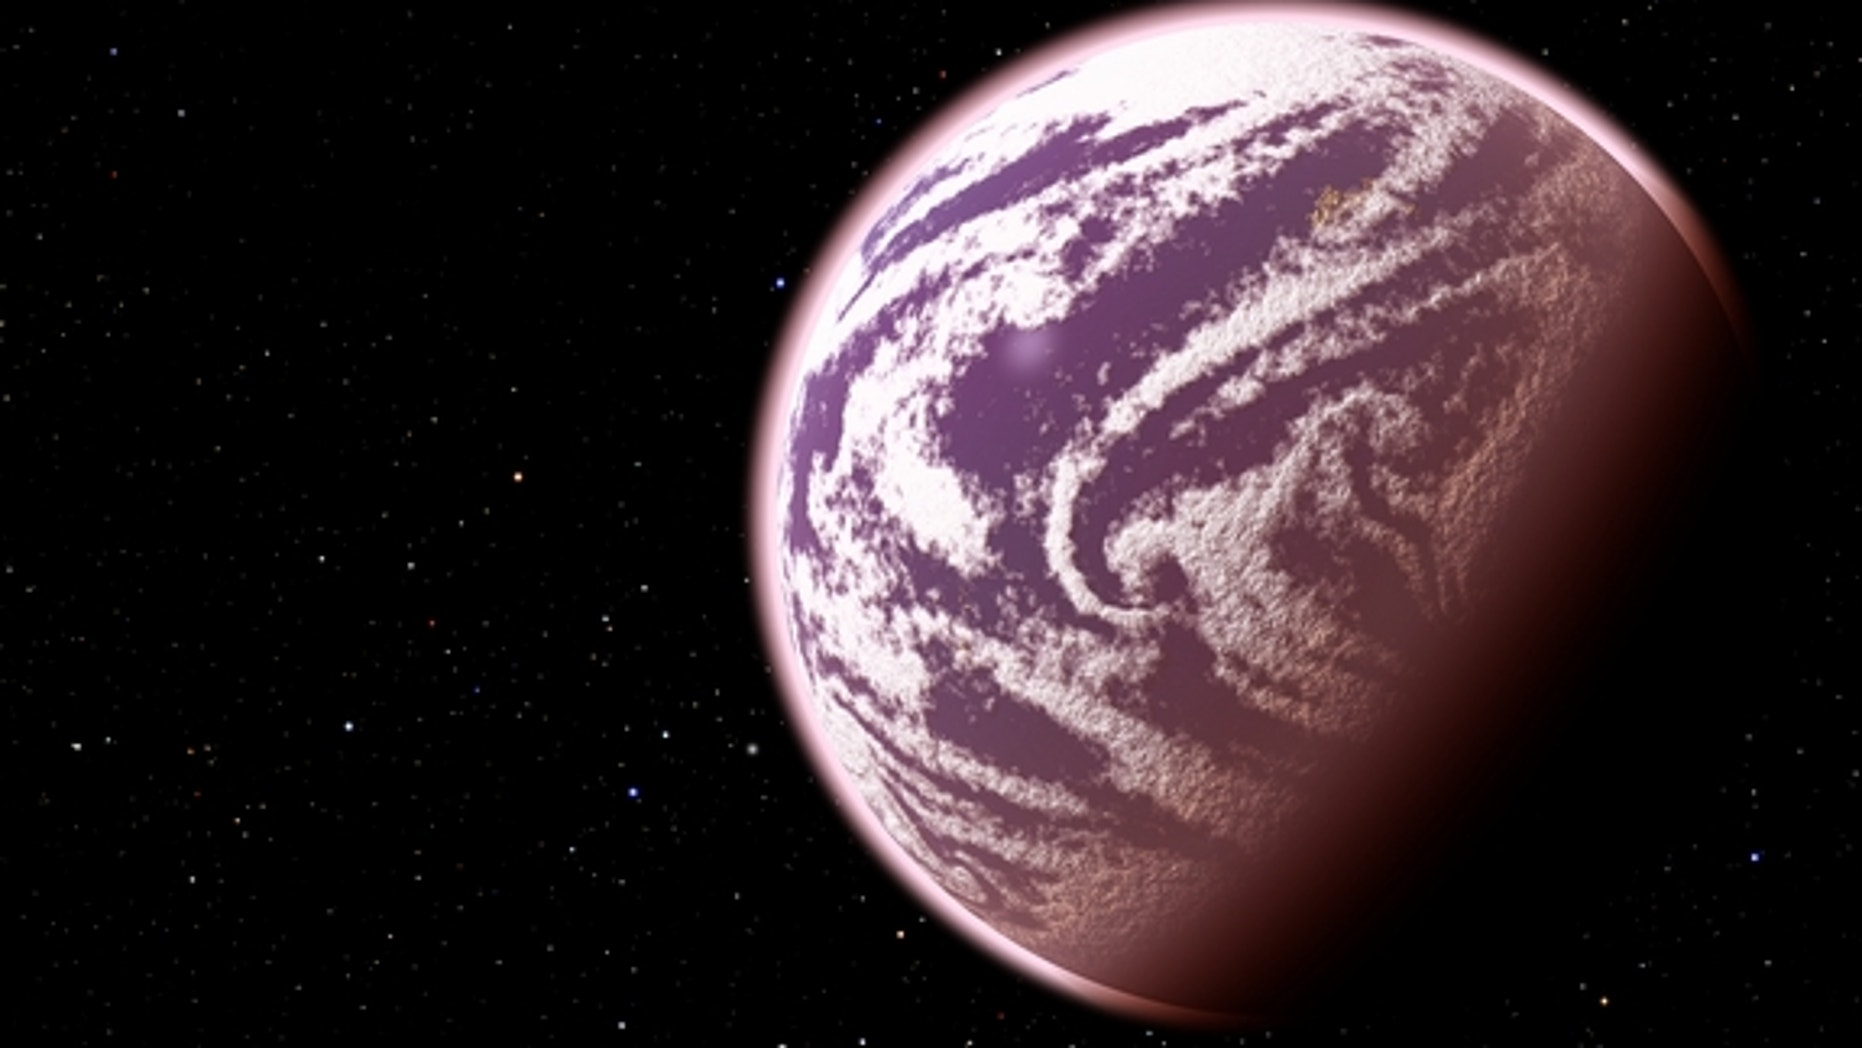 KOI-314c, shown in this artist's conception, is the lightest planet to have both its mass and physical size measured. Surprisingly, although the planet weighs the same as Earth, it is 60 percent larger in diameter, meaning that it must have a v